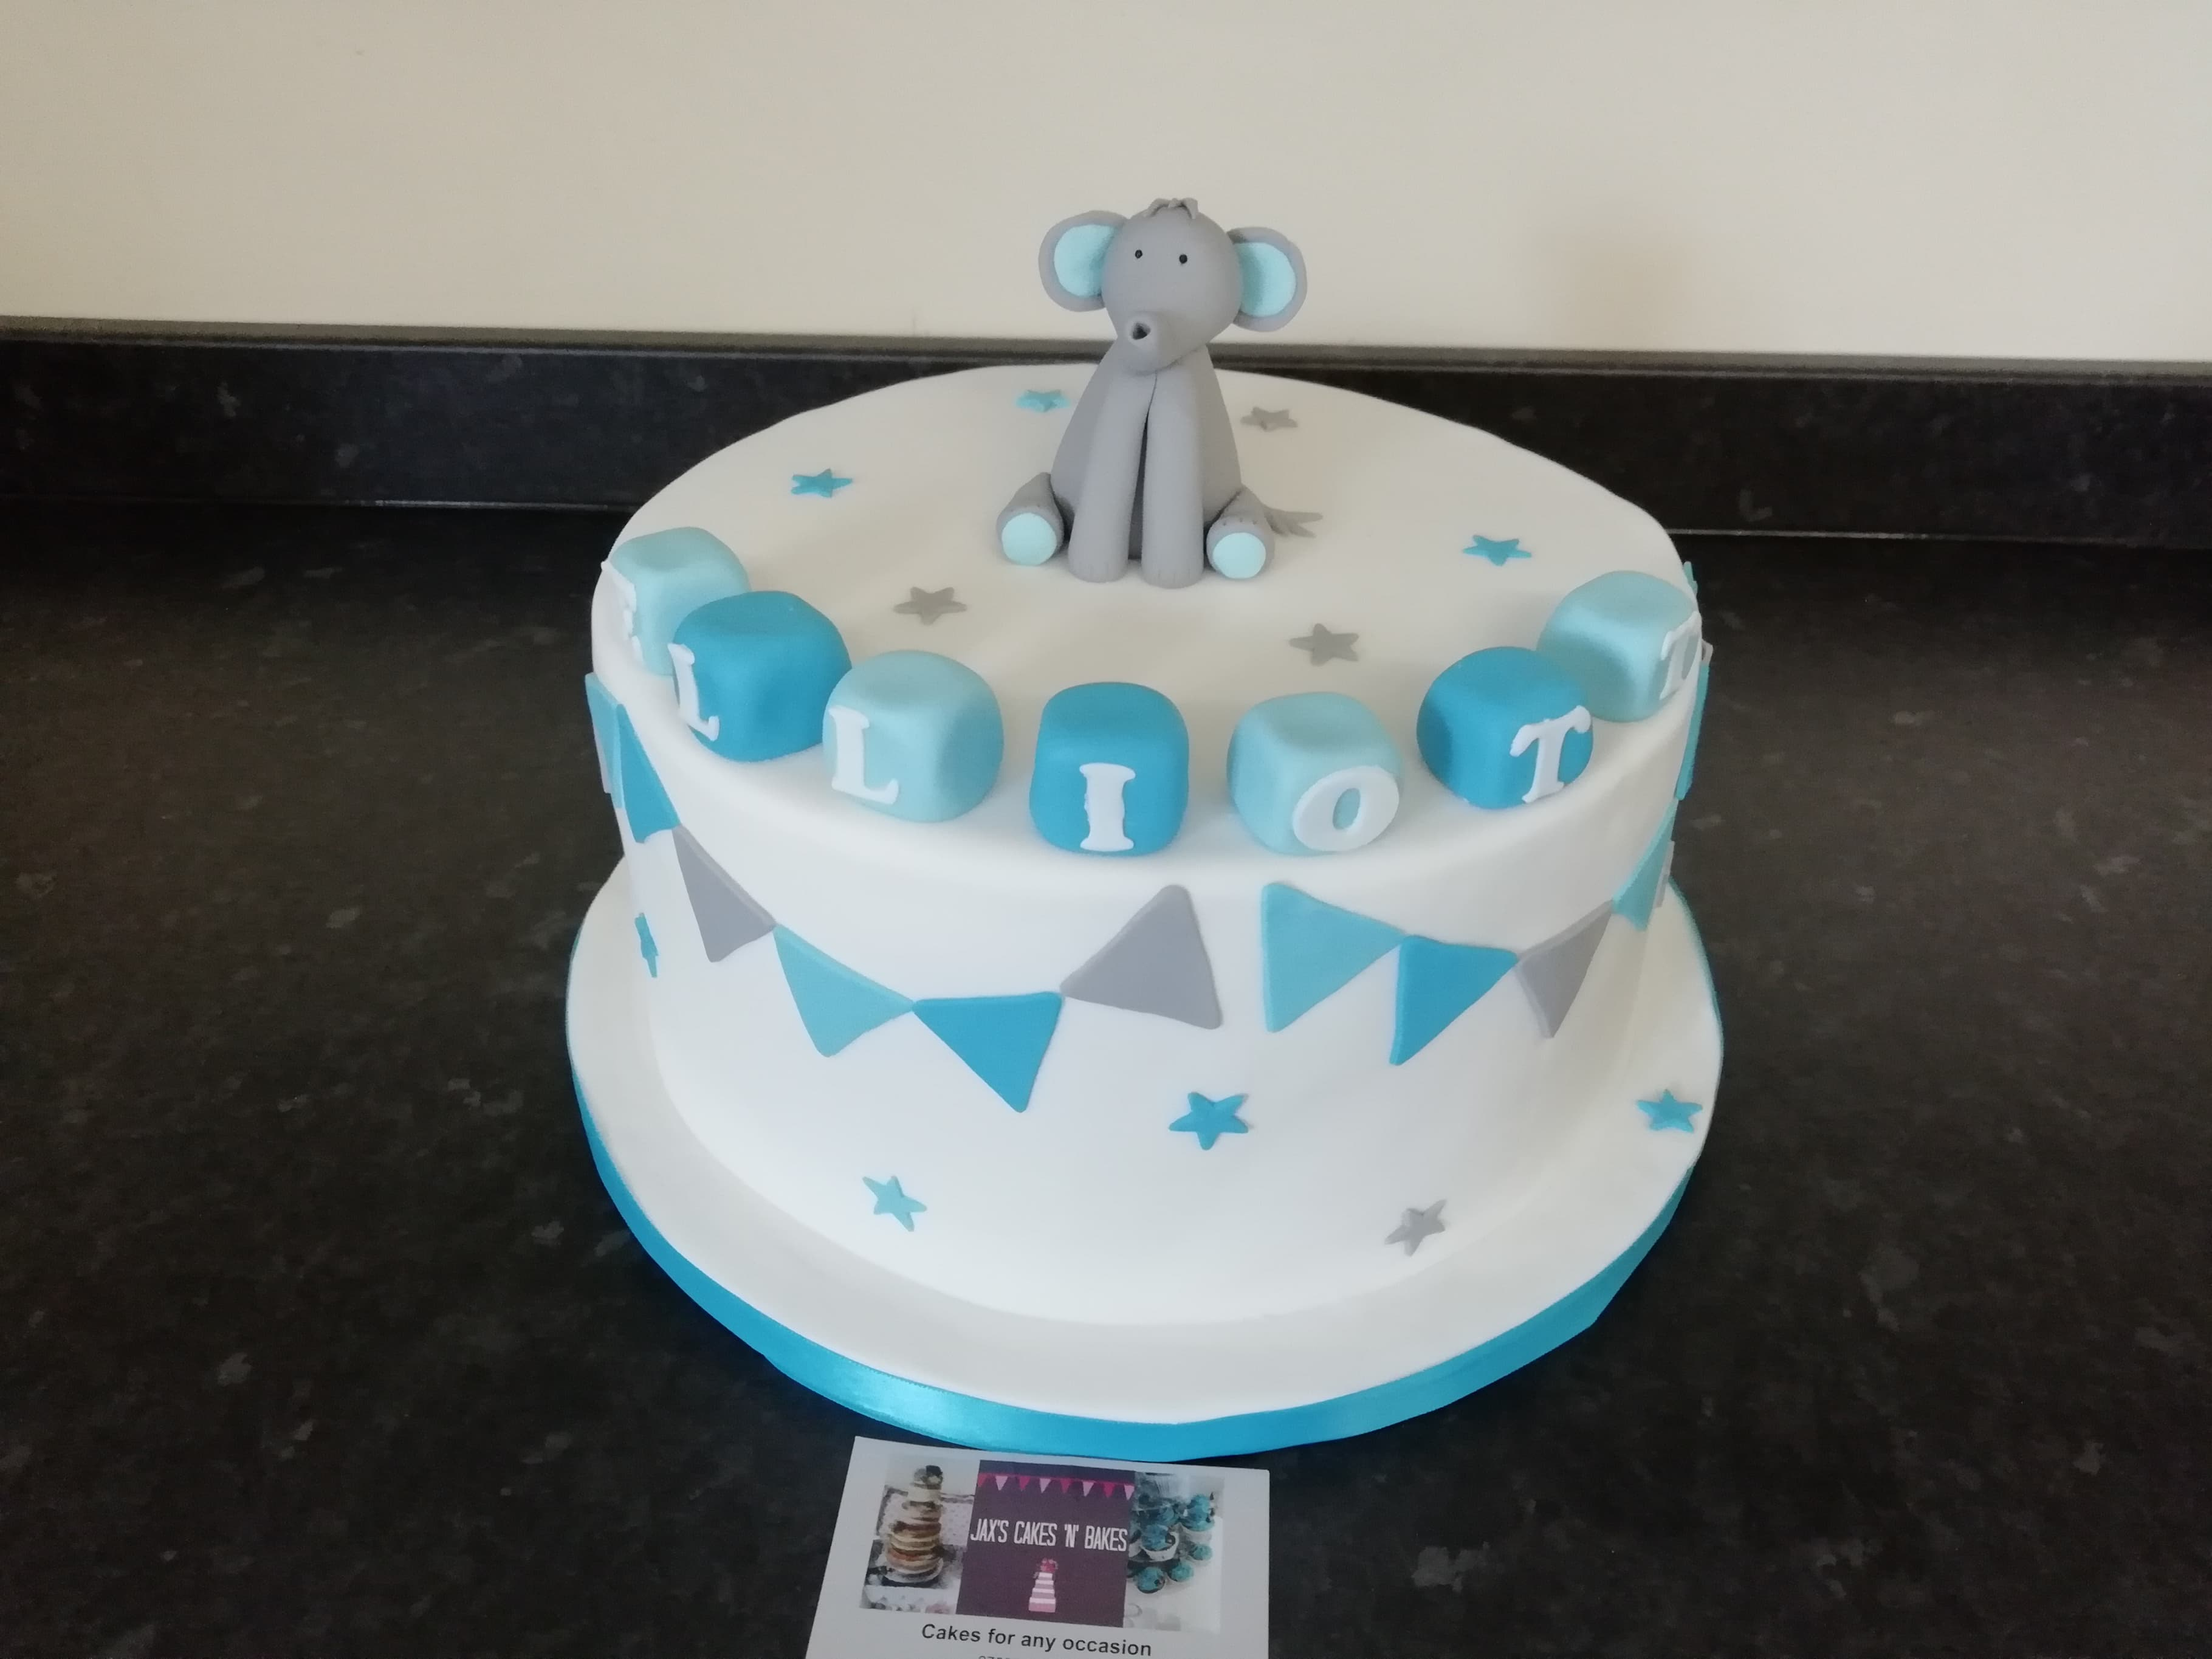 Christening cake with elephant model and bunting in blue & grey